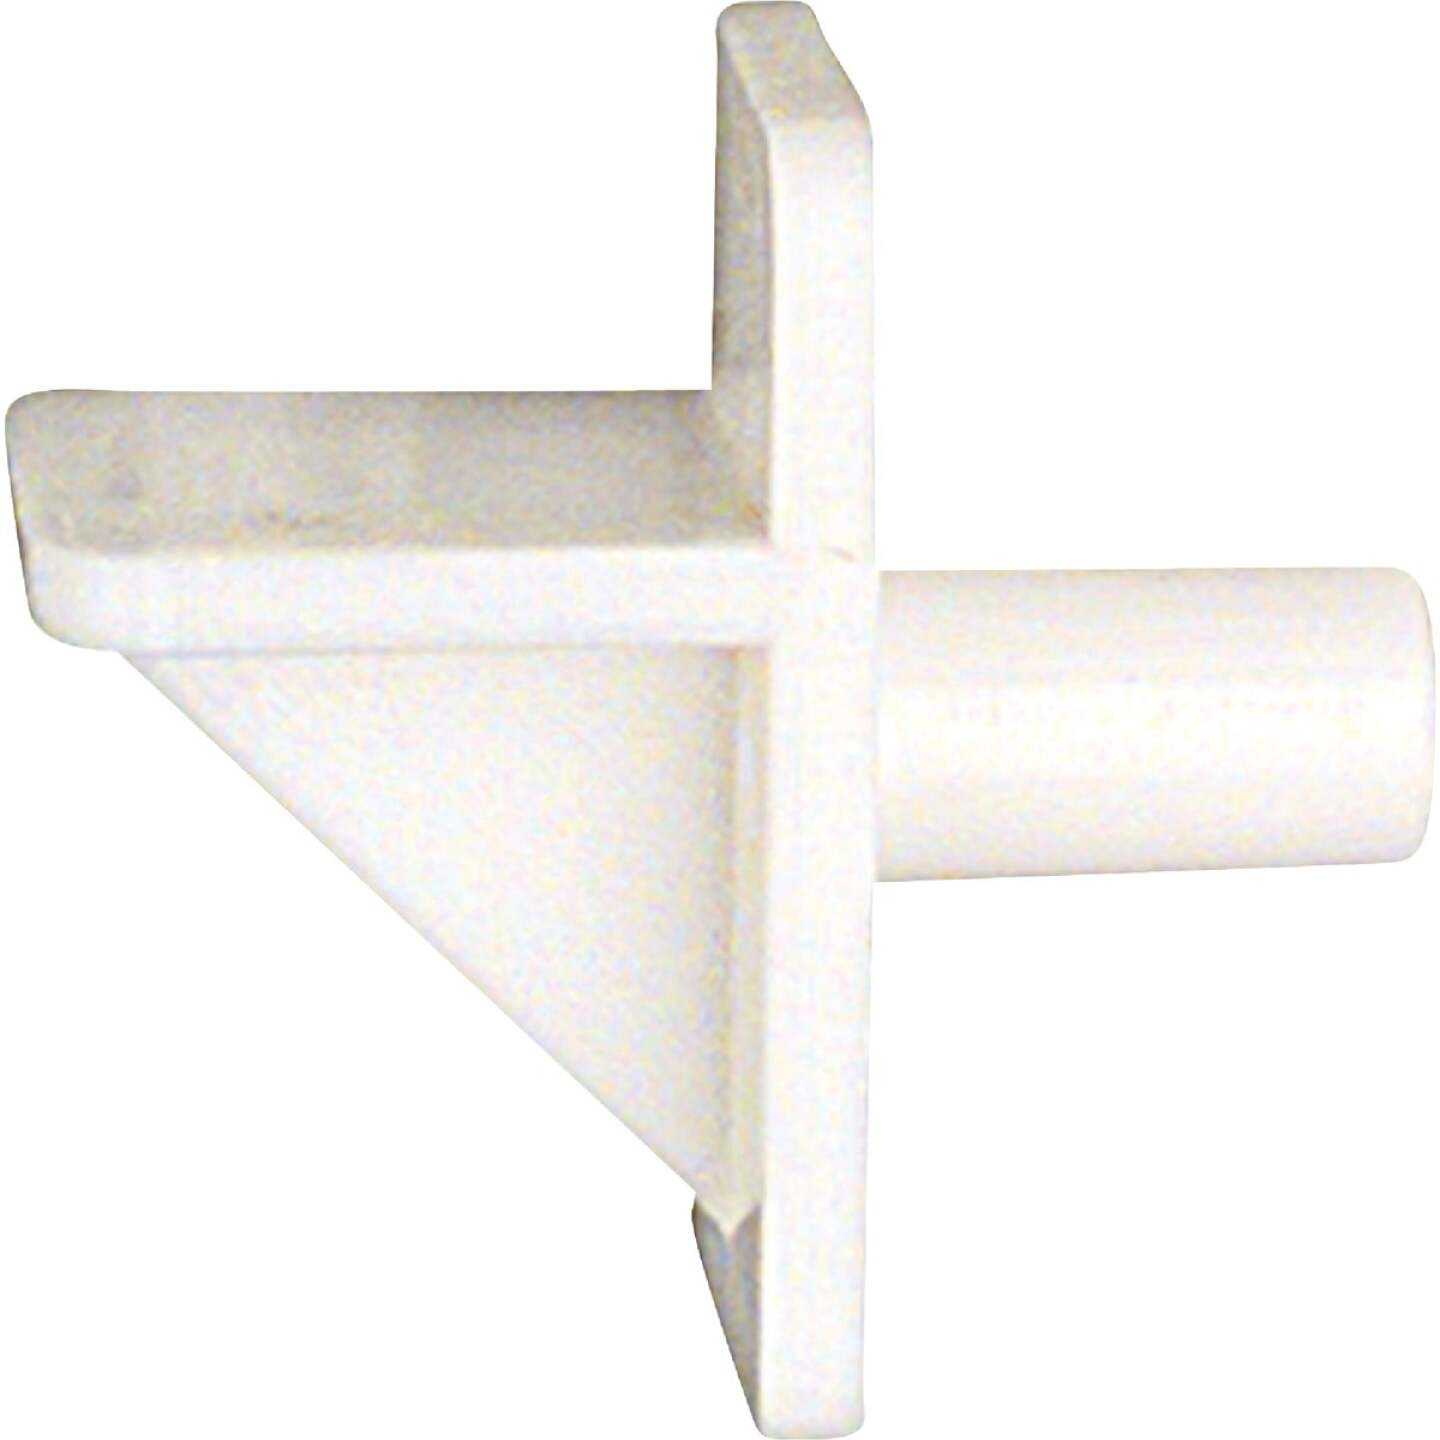 National 159 1/4 In. White Plastic Shelf Support Image 1